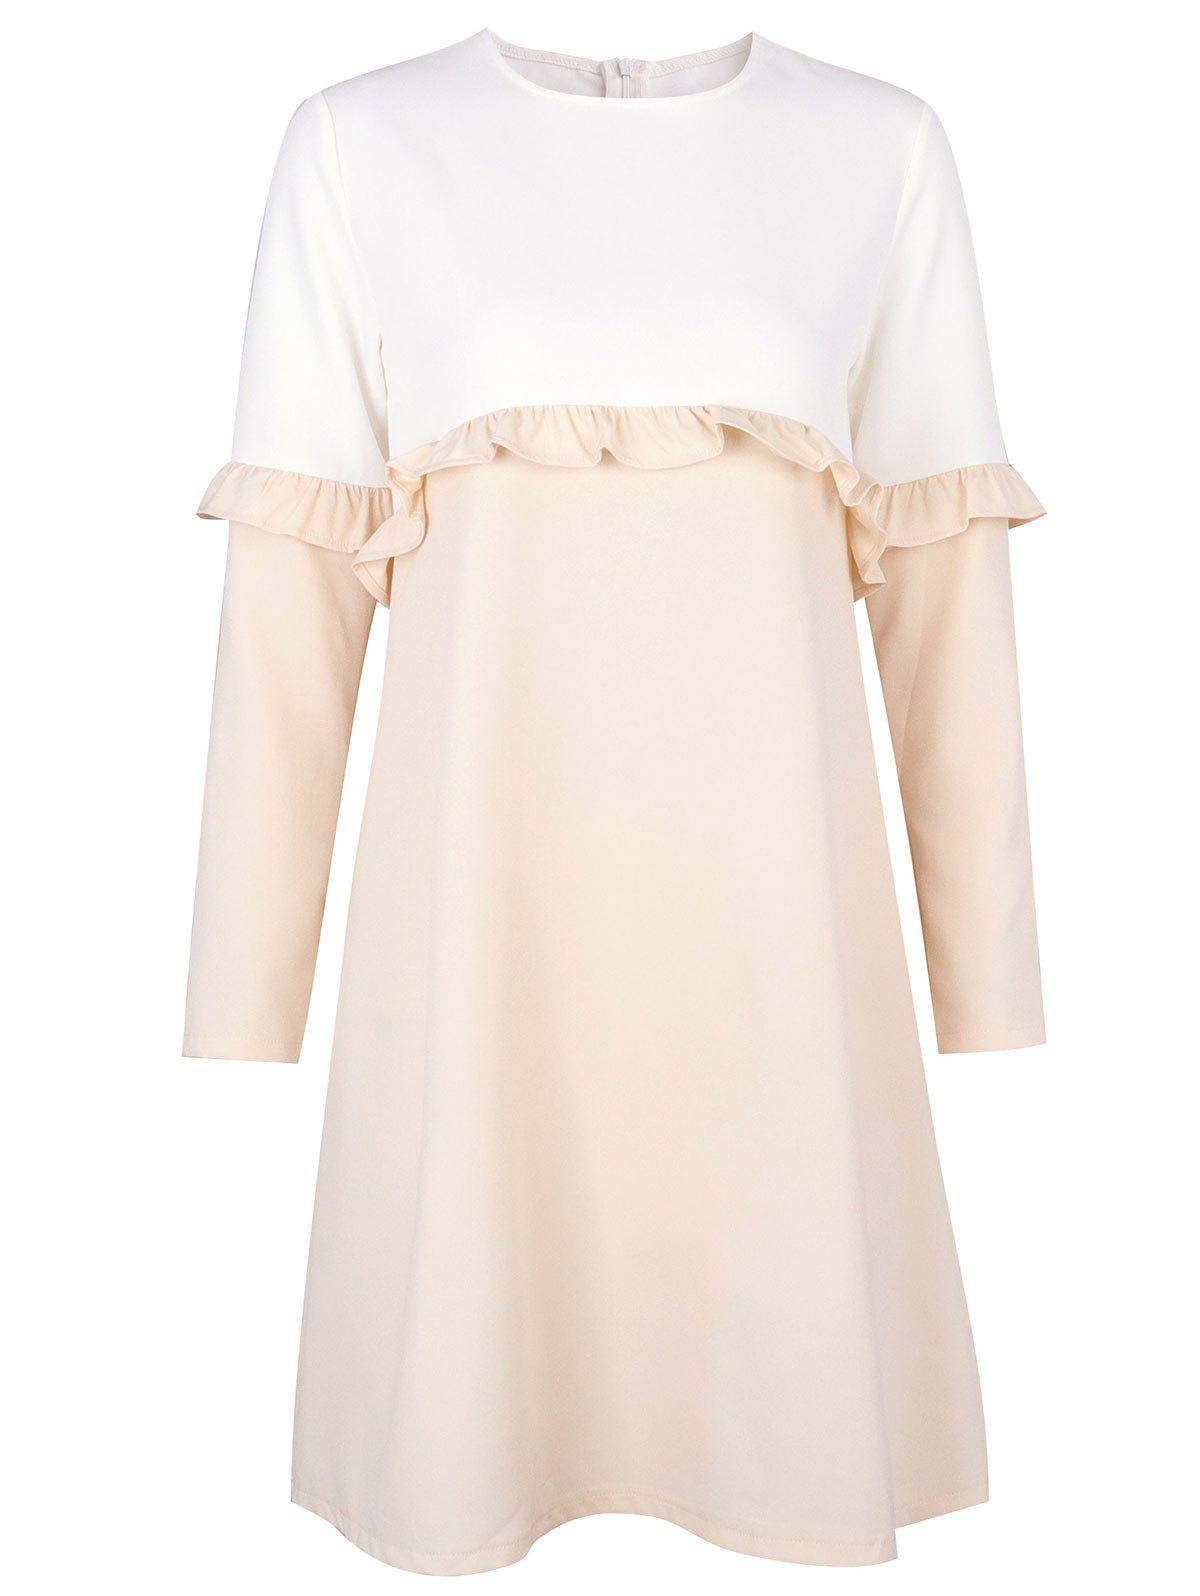 Flounce Two Tone Shift Dress - LIGHT KHAKI M